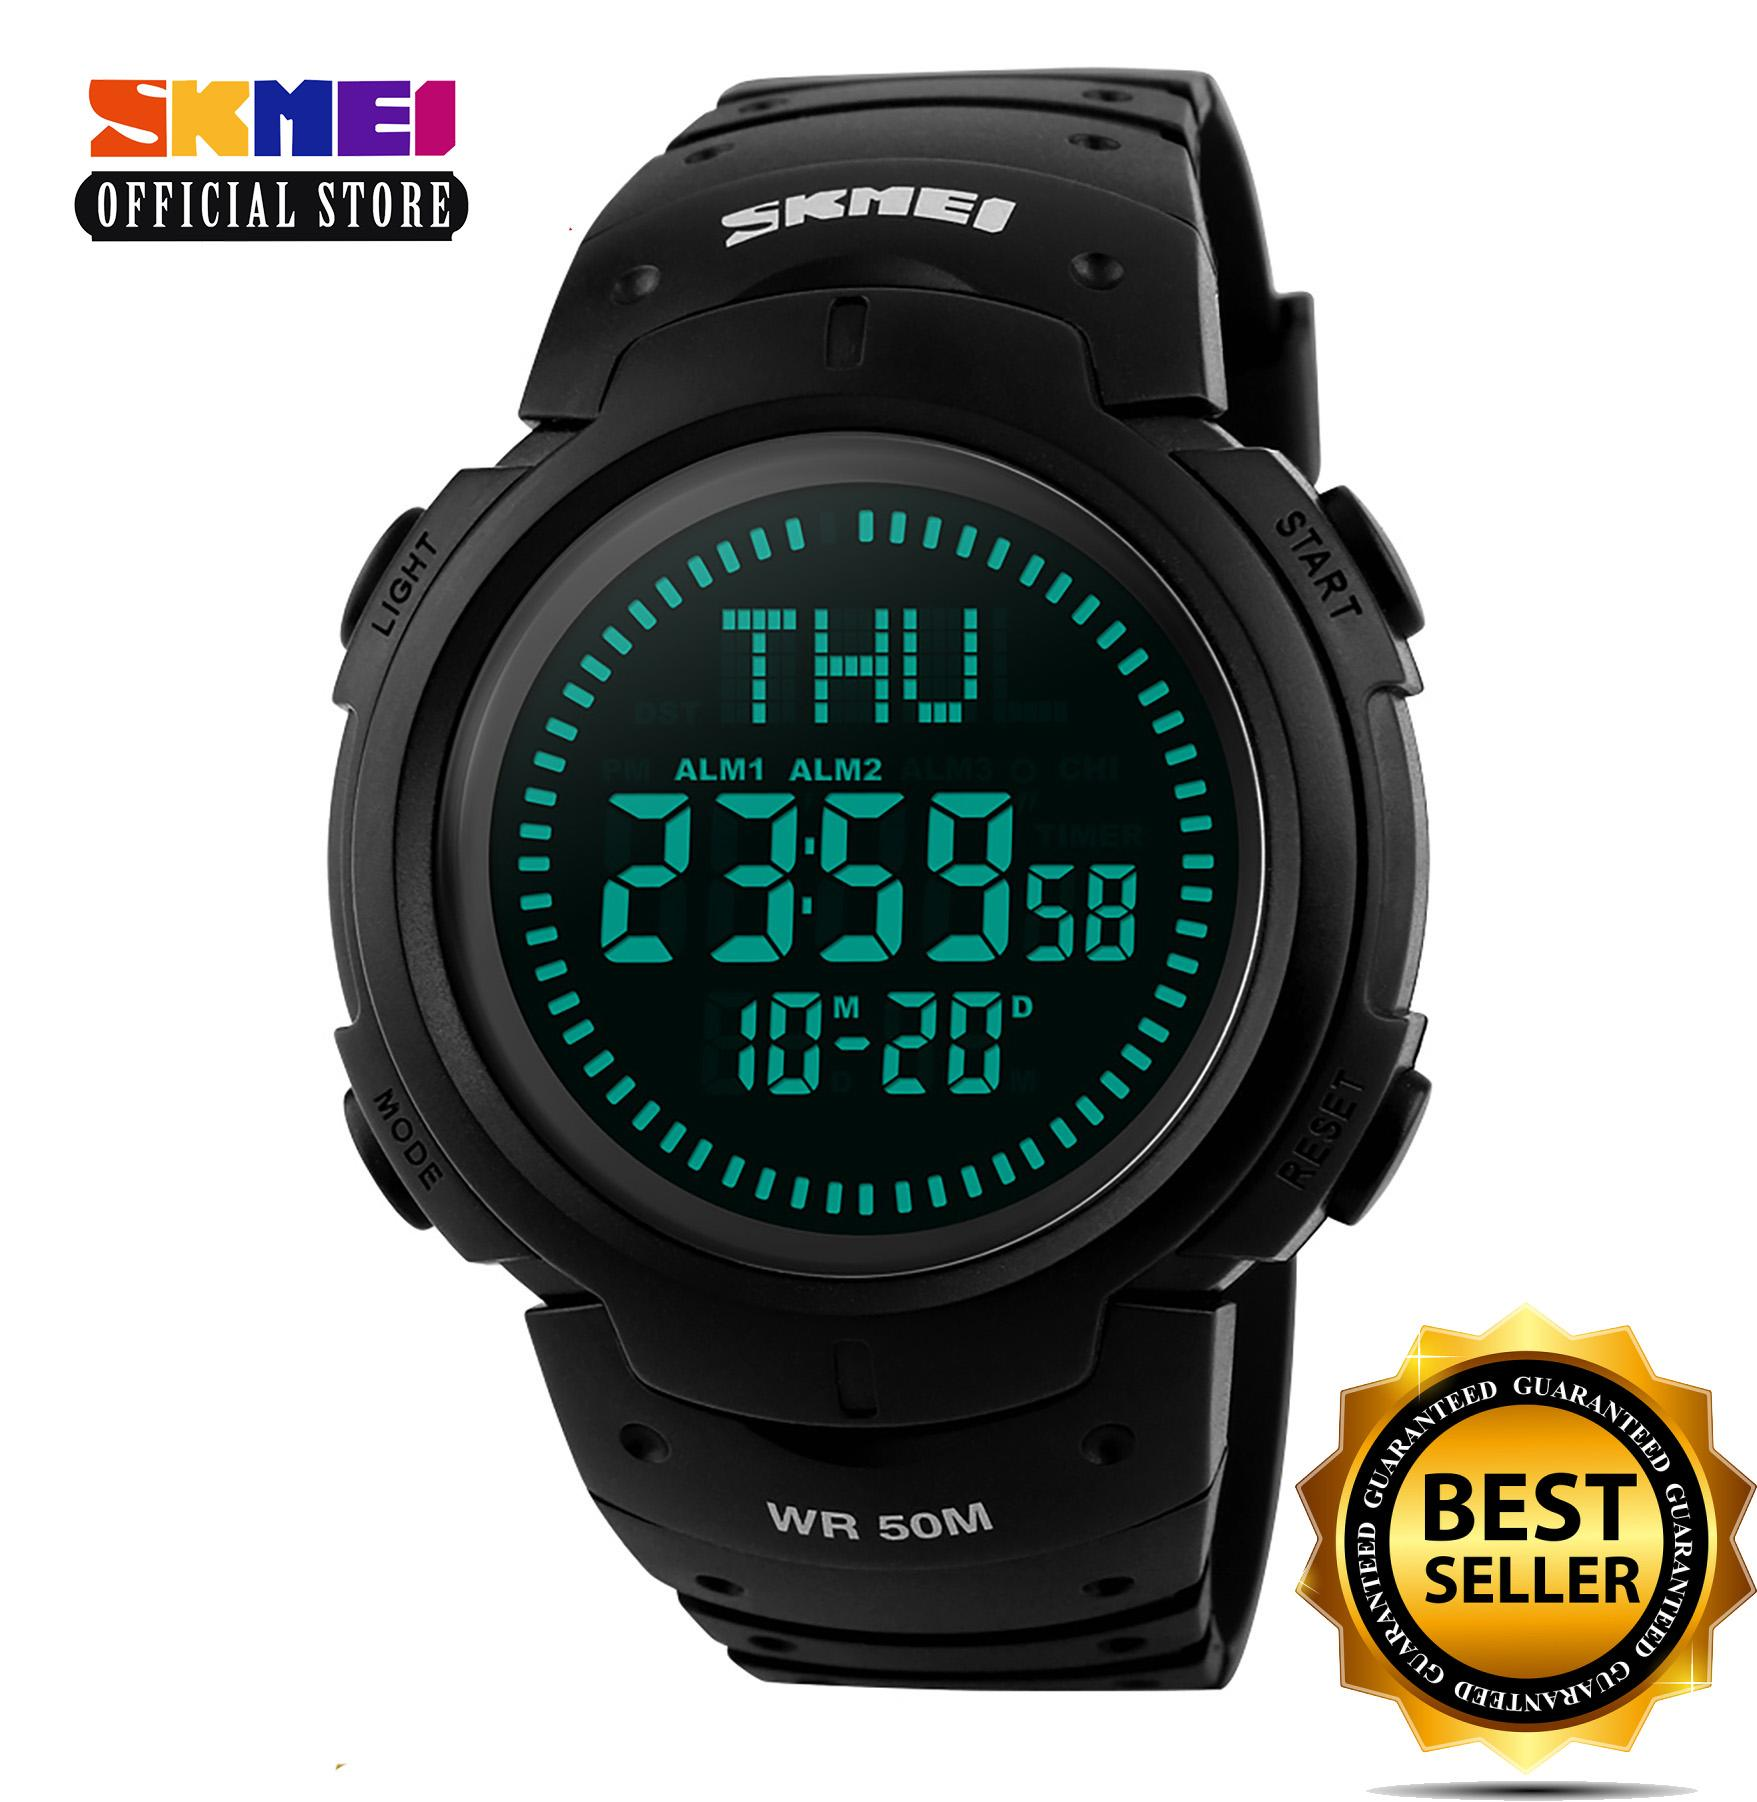 SKMEI 1231 (Black) Outdoor Sports Compass Watches Hiking Men Watch Digital LED Electronic Watch Man Sports Watches Chronograph Men Clock